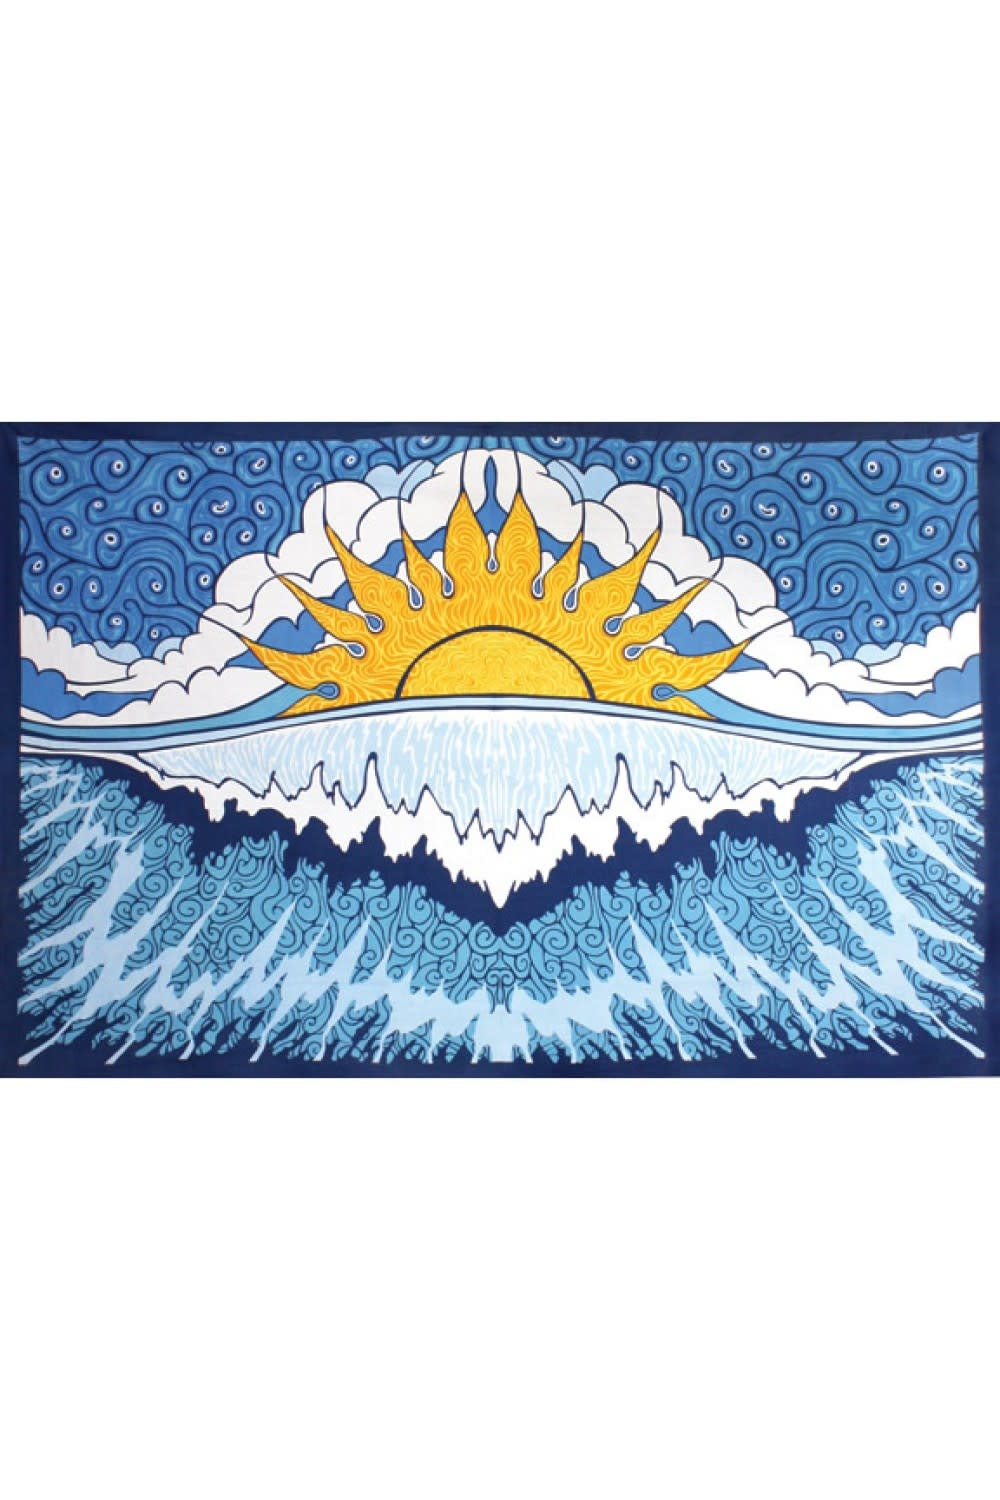 SJ Art Tapestry Sun Wave